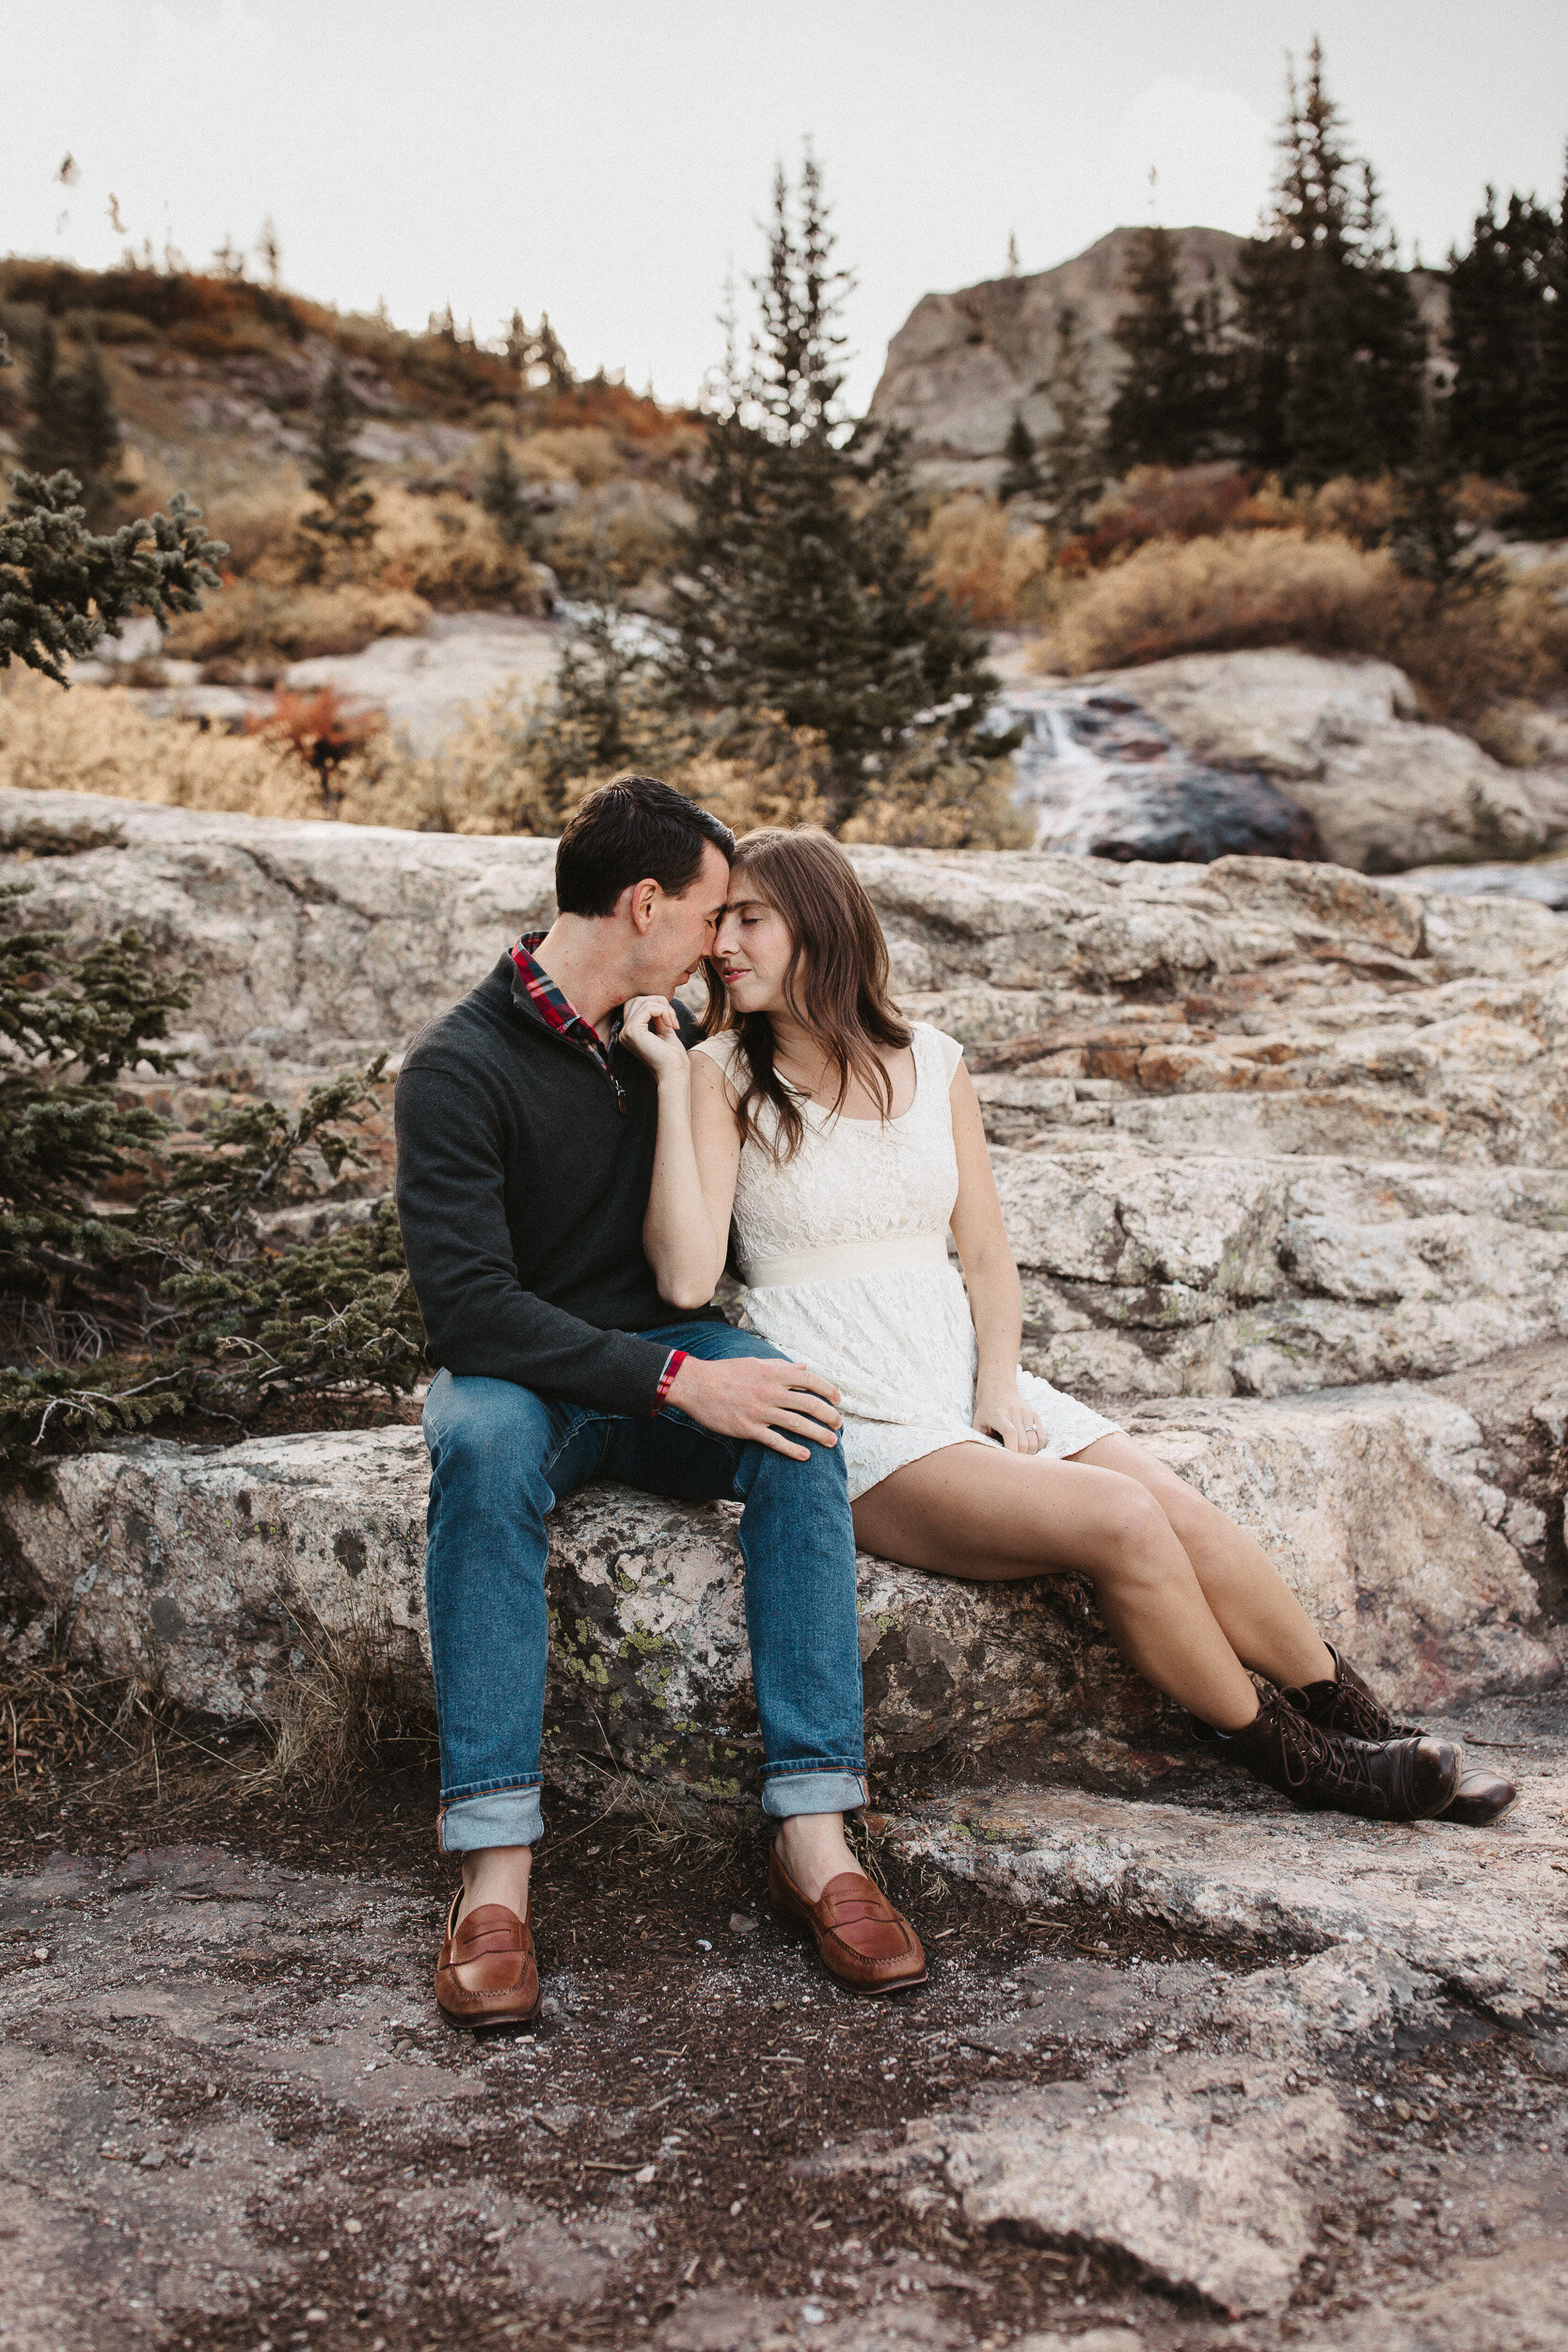 Claire_&_Matthew_Engagment_Breckenridge_Colorado_Fall_0107.jpg